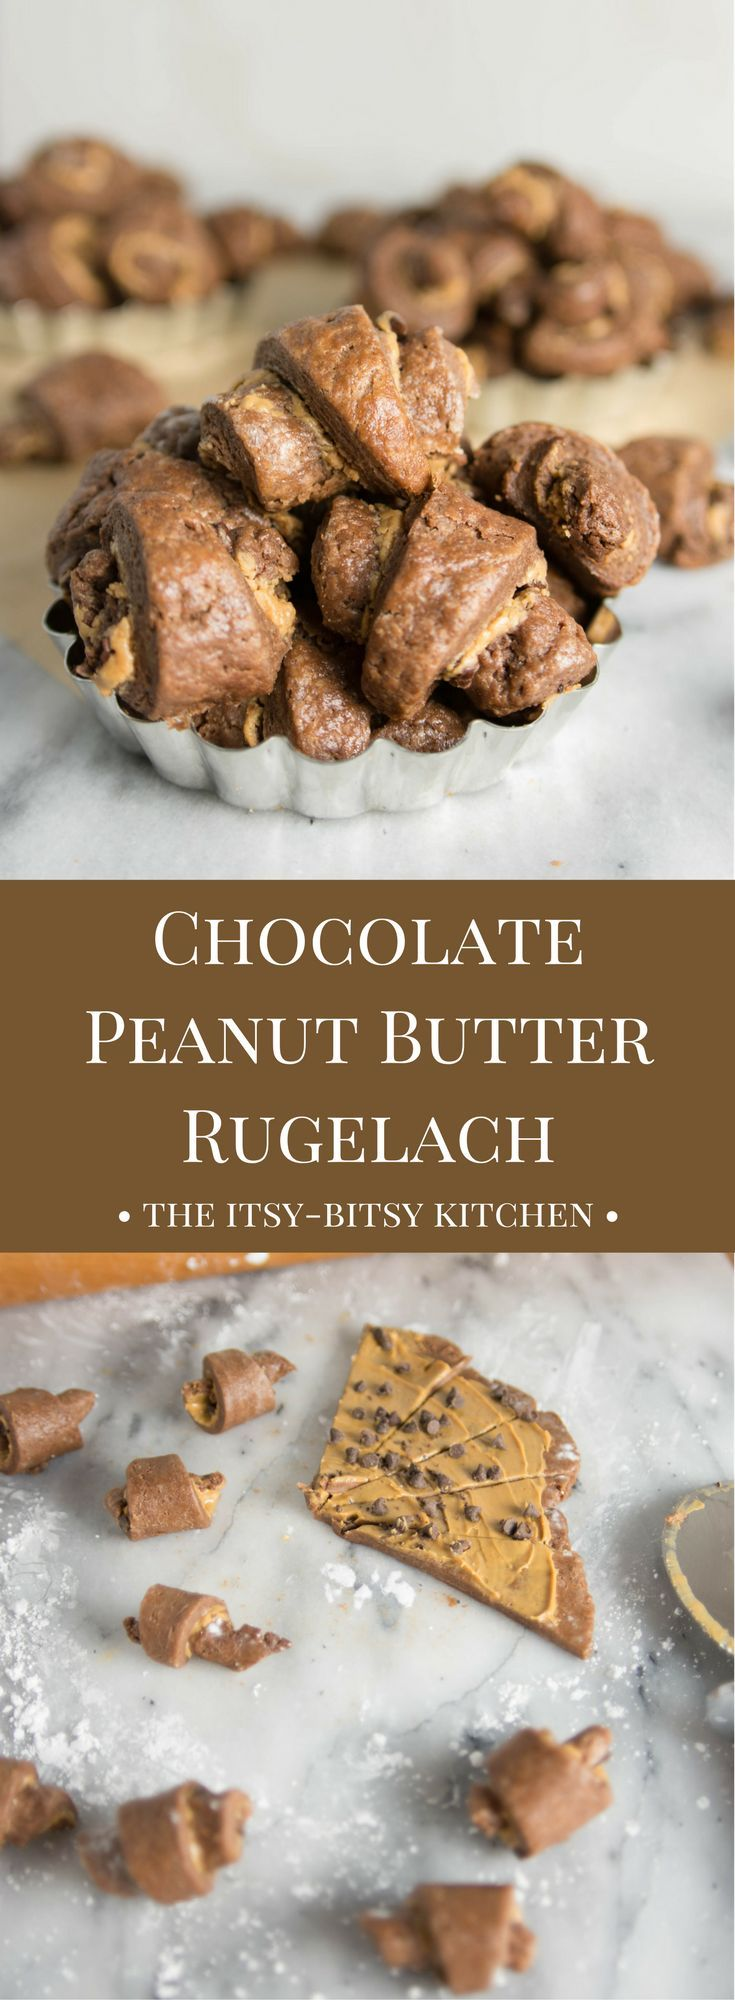 Best 25+ Rugelach recipe ideas only on Pinterest | Easy hanukkah ...